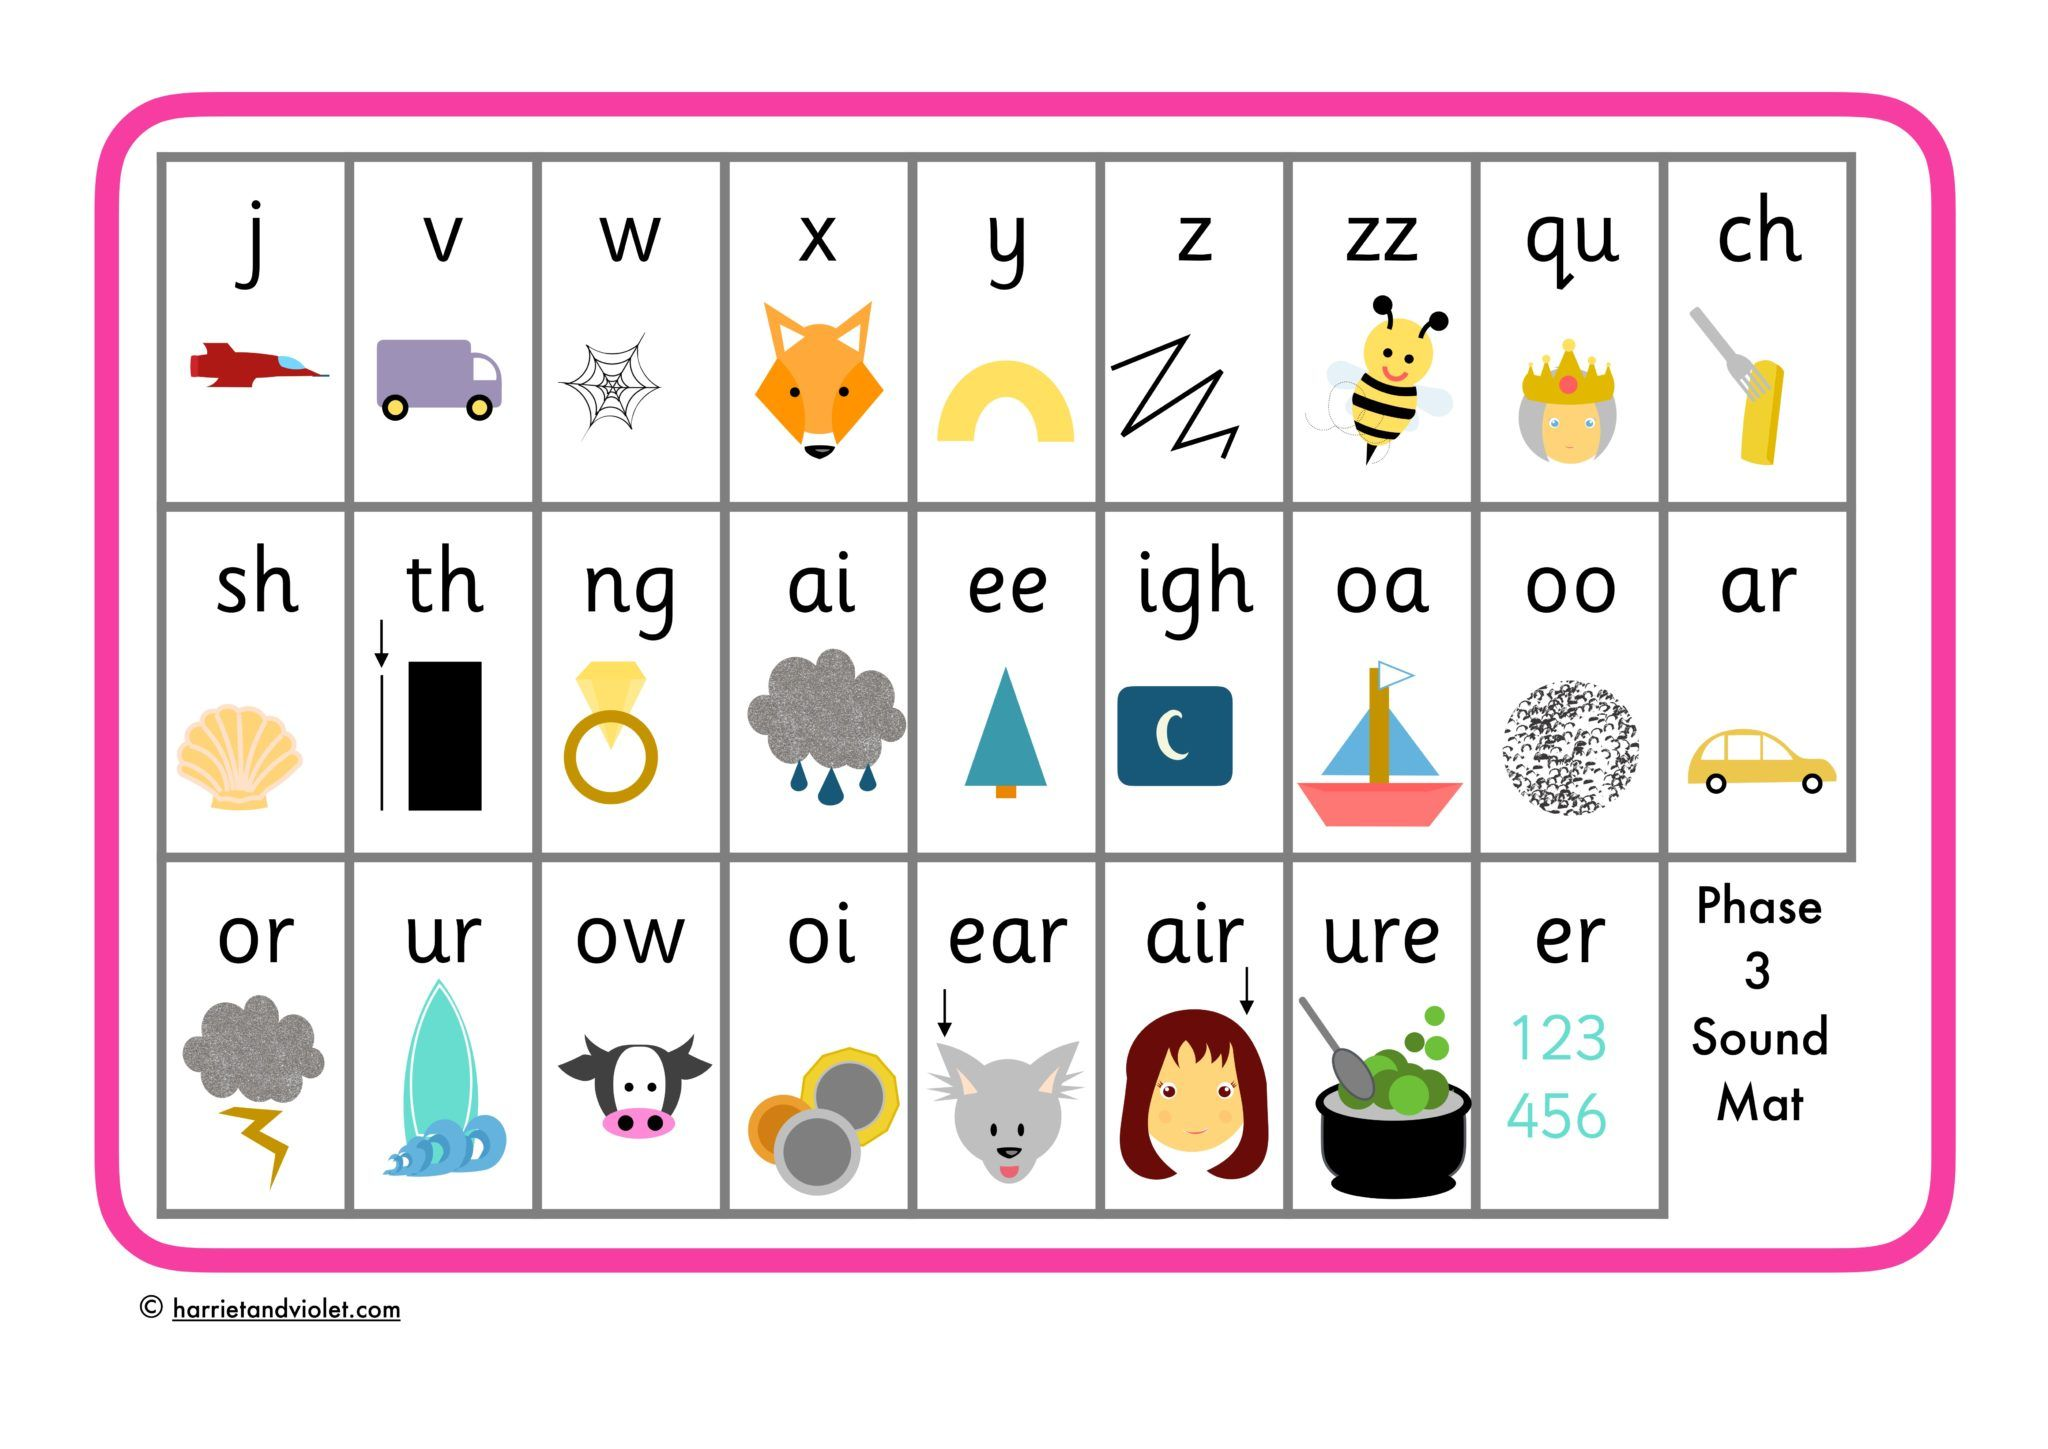 Teach Child How To Read Phonics Worksheets Phase 3